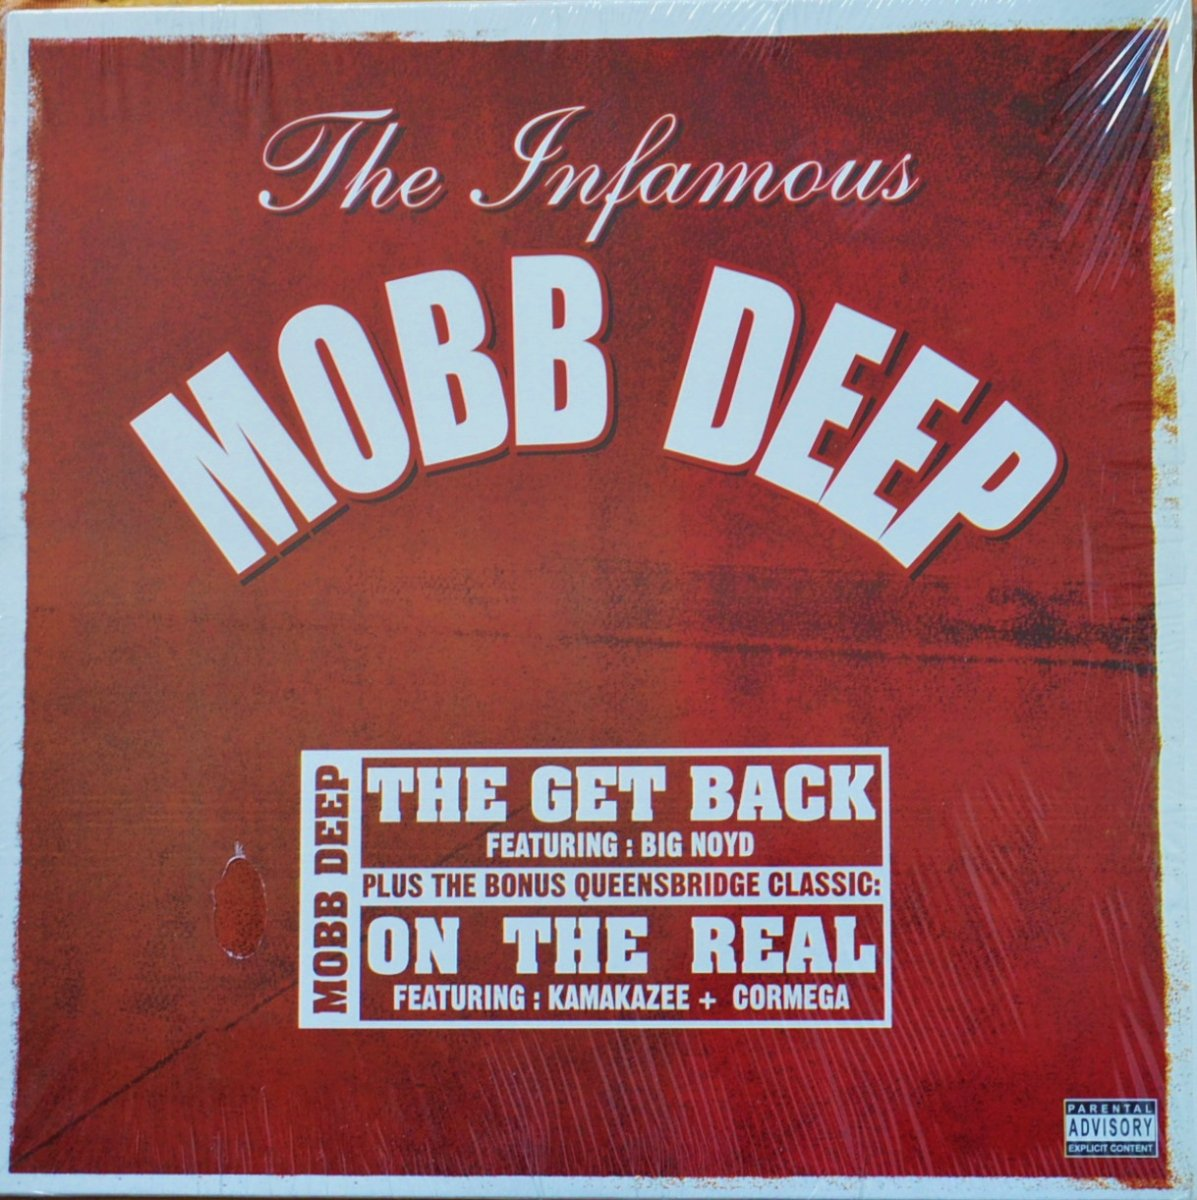 MOBB DEEP / THE GET BACK (FT.BIG NOYD,PROD.GODFATHER DON) / ON THE REAL (FT.CORMEGA, KAMAKAZEE)(12